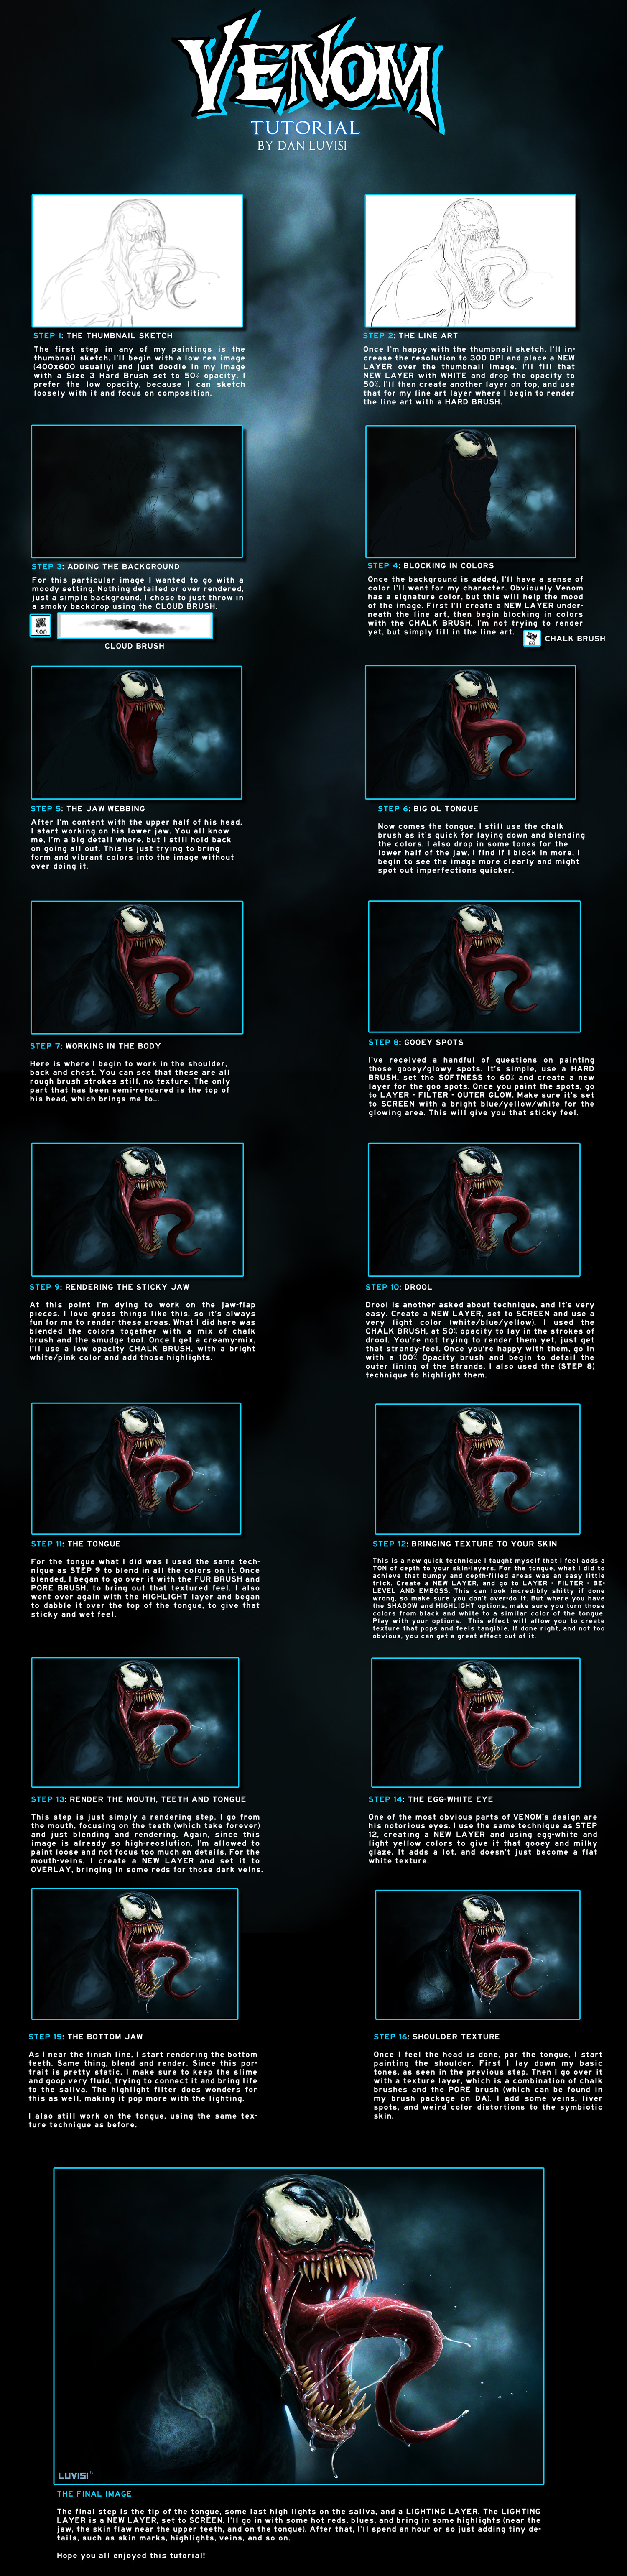 VENOM - TUTORIAL by DanLuVisiArt